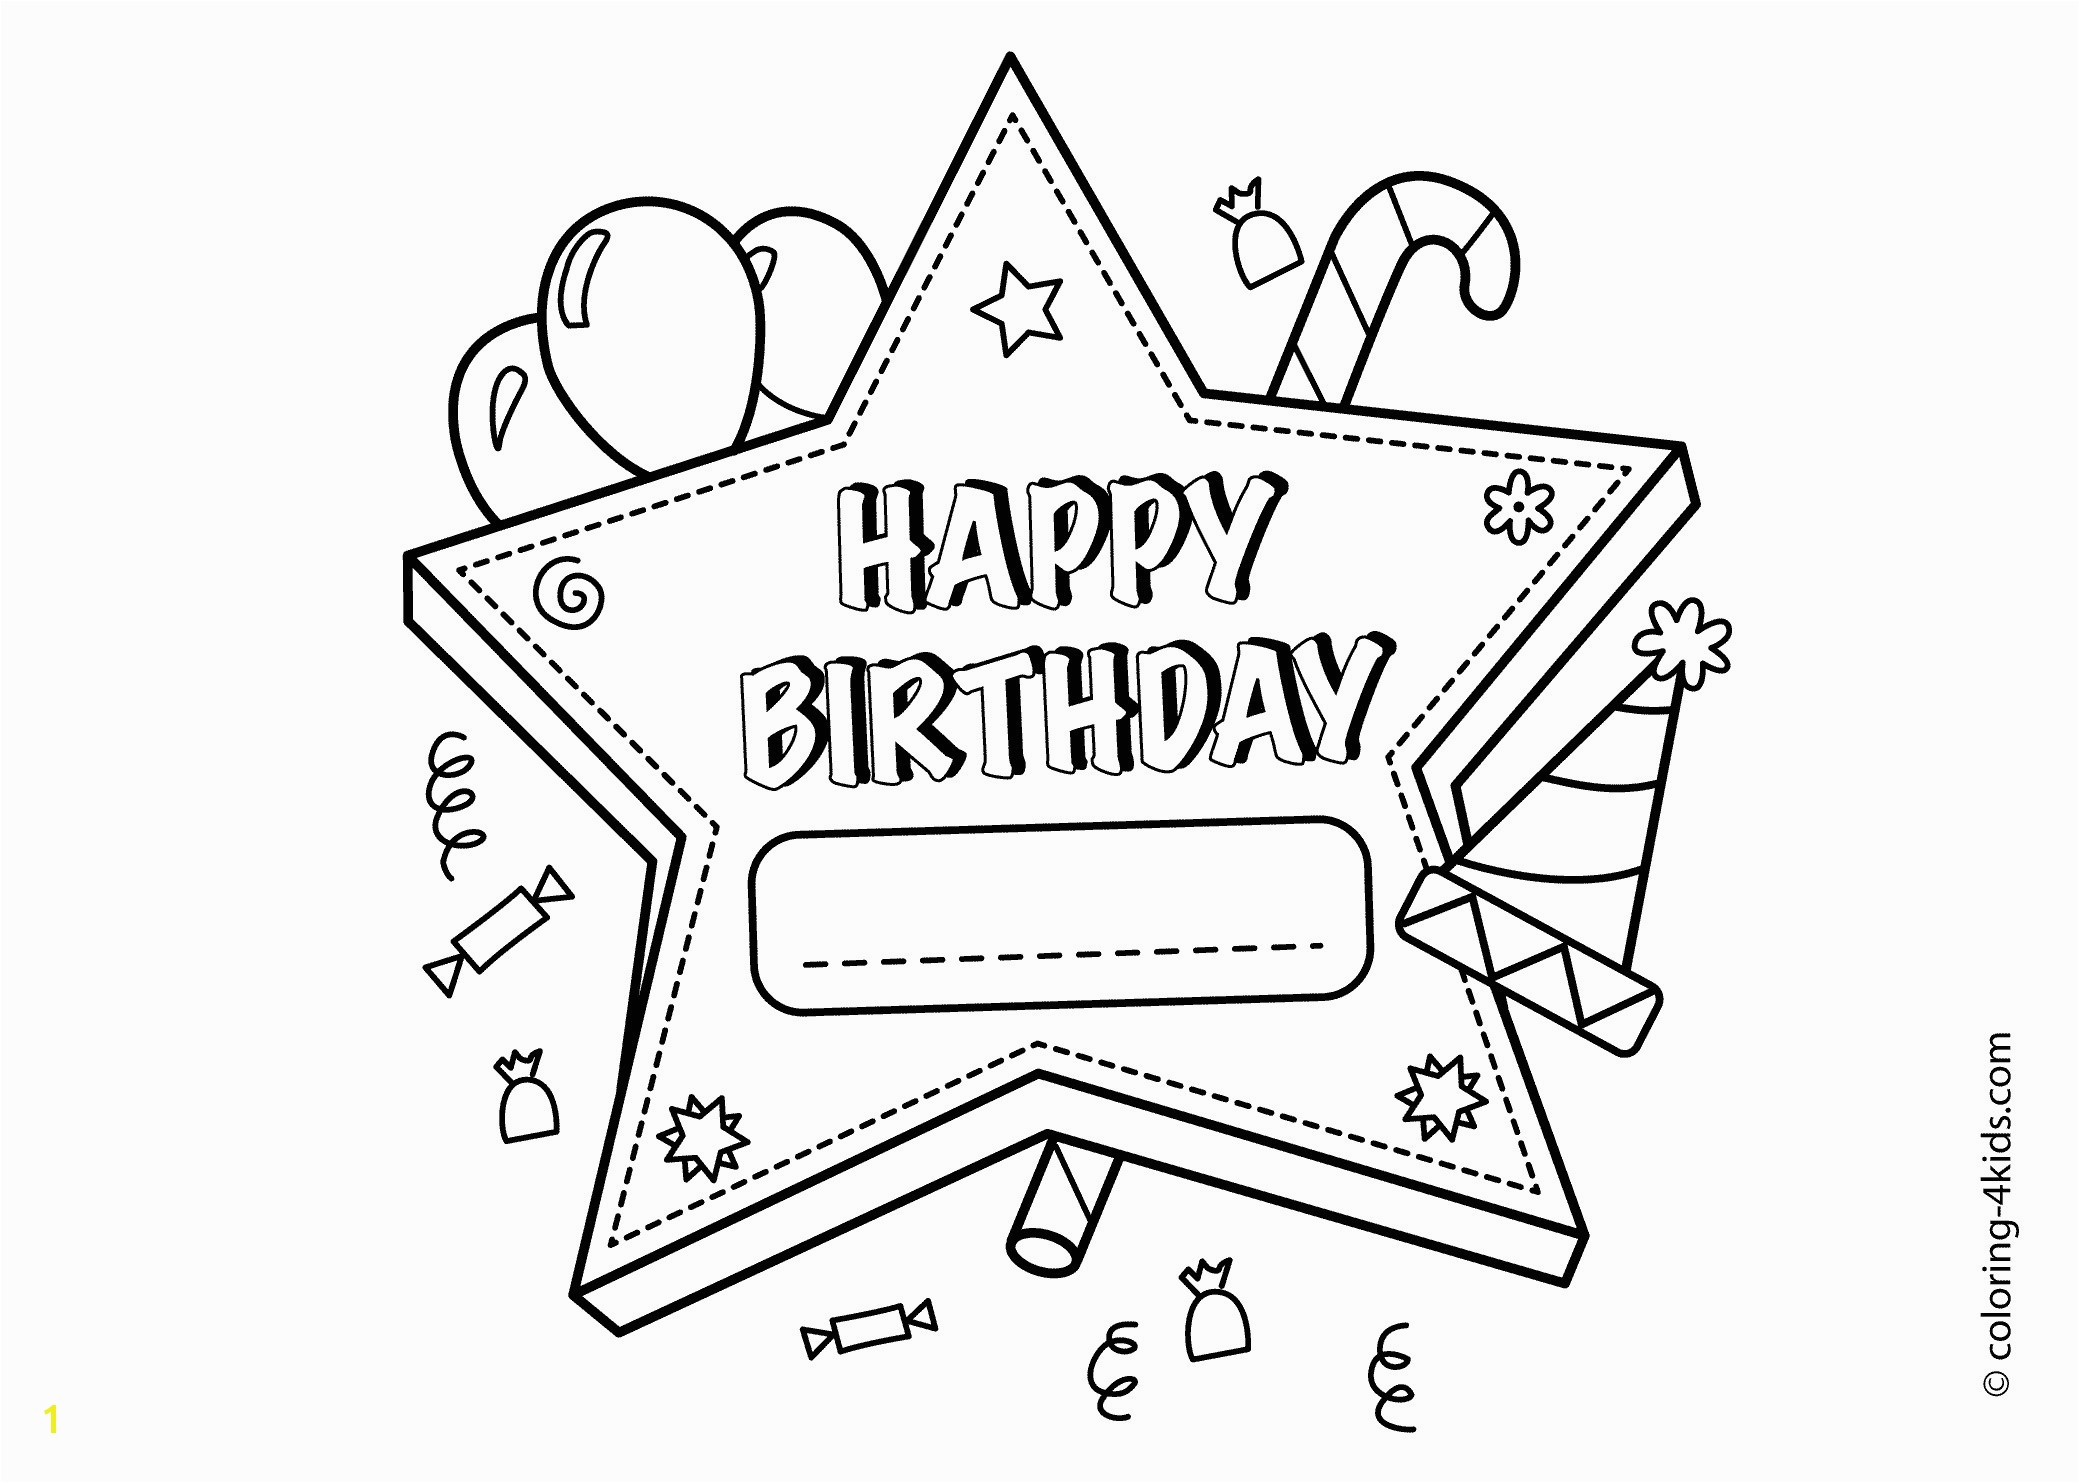 Happy Birthday Coloring Page Birthday Coloring Pages For ...